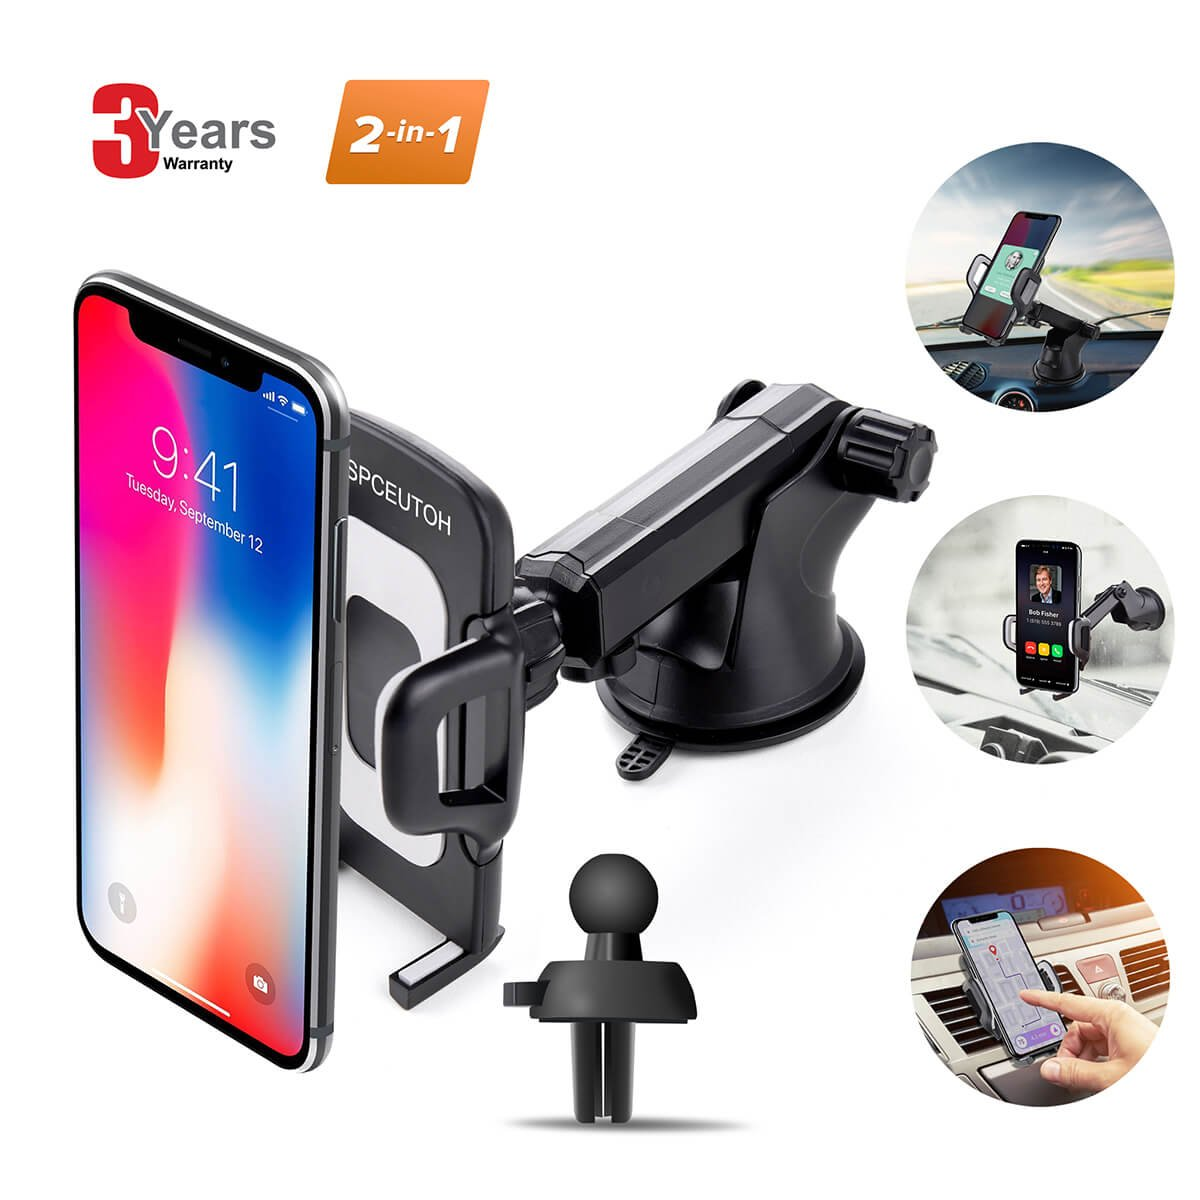 Car Phone Mount, Universal Air Vent Phone Holder for Car Cell Phone, Upgrade 360 Degrees Soft Rubber Car Phone Holder Dashboard Windshield Mount for iPhone, Galaxy, LG and More by SPCEUTOH (Black) Car Phone Mount/Phone Holder for Car